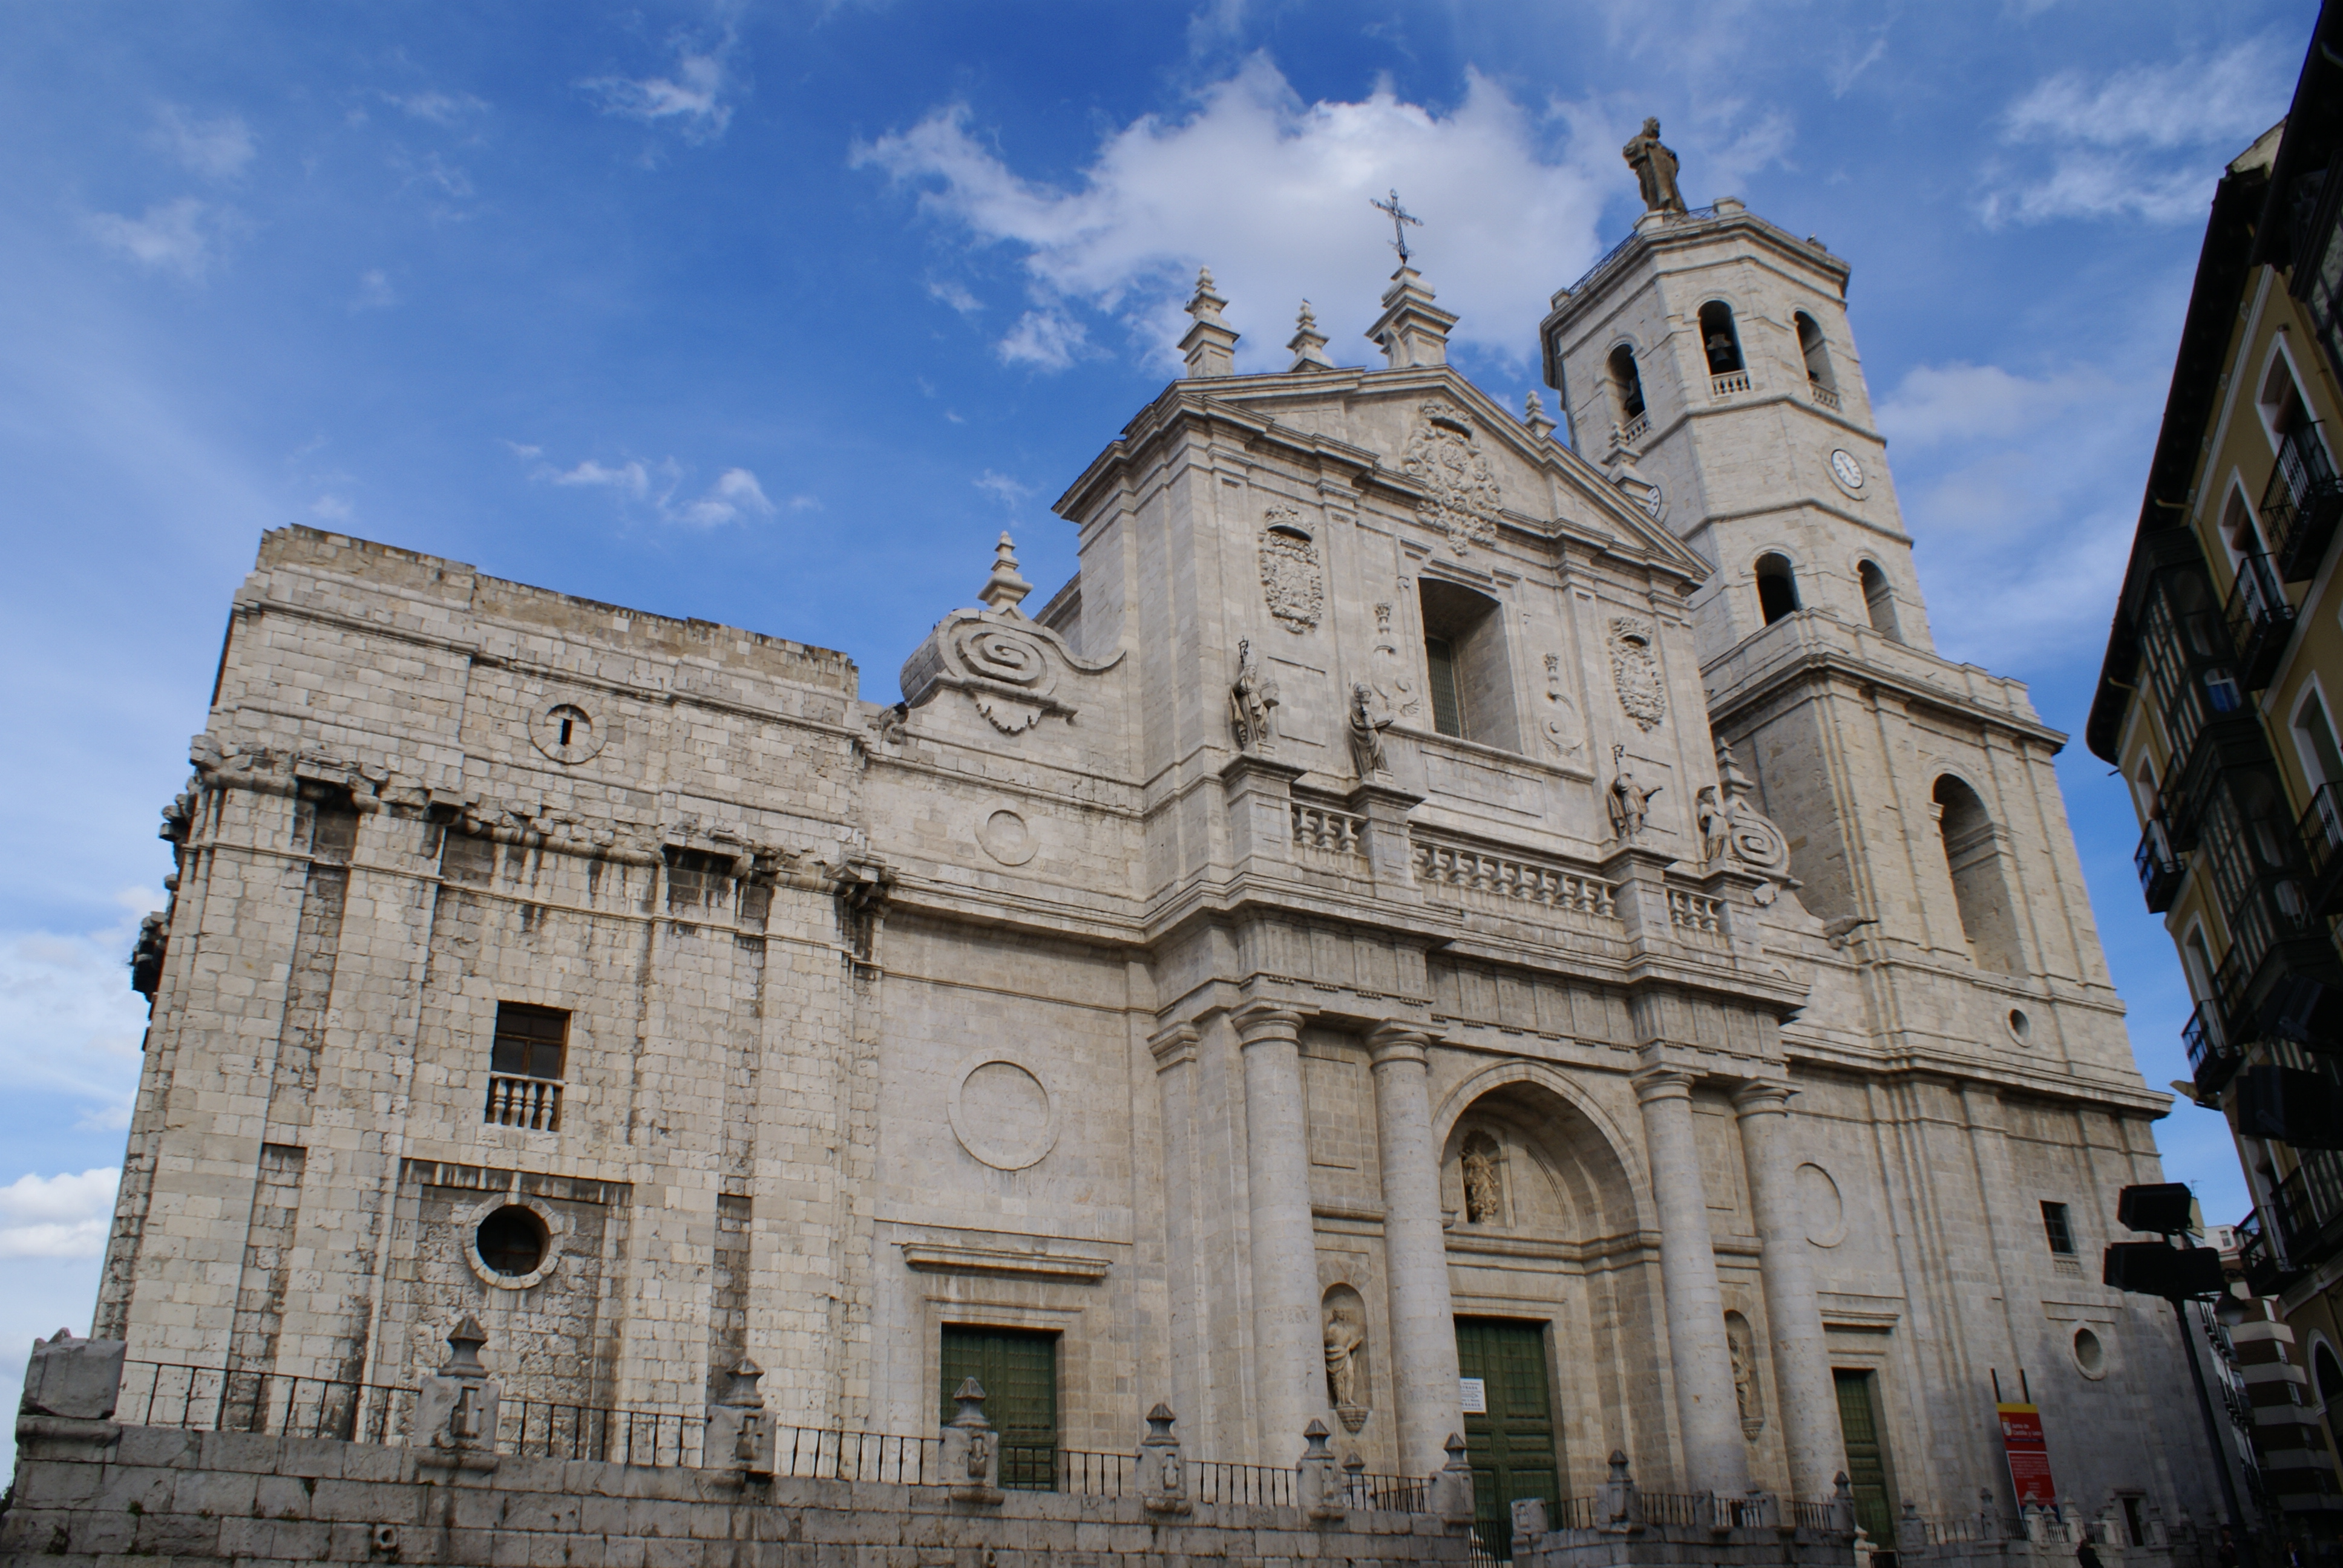 http://upload.wikimedia.org/wikipedia/commons/c/c0/Valladolid_-_Catedral.jpg